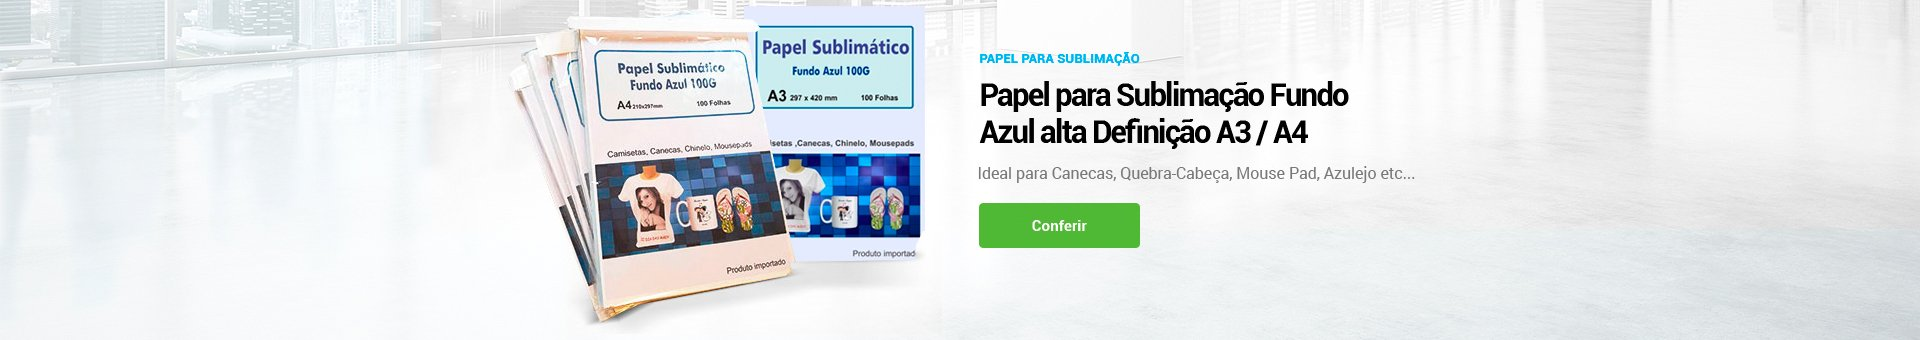 papel sublimatico